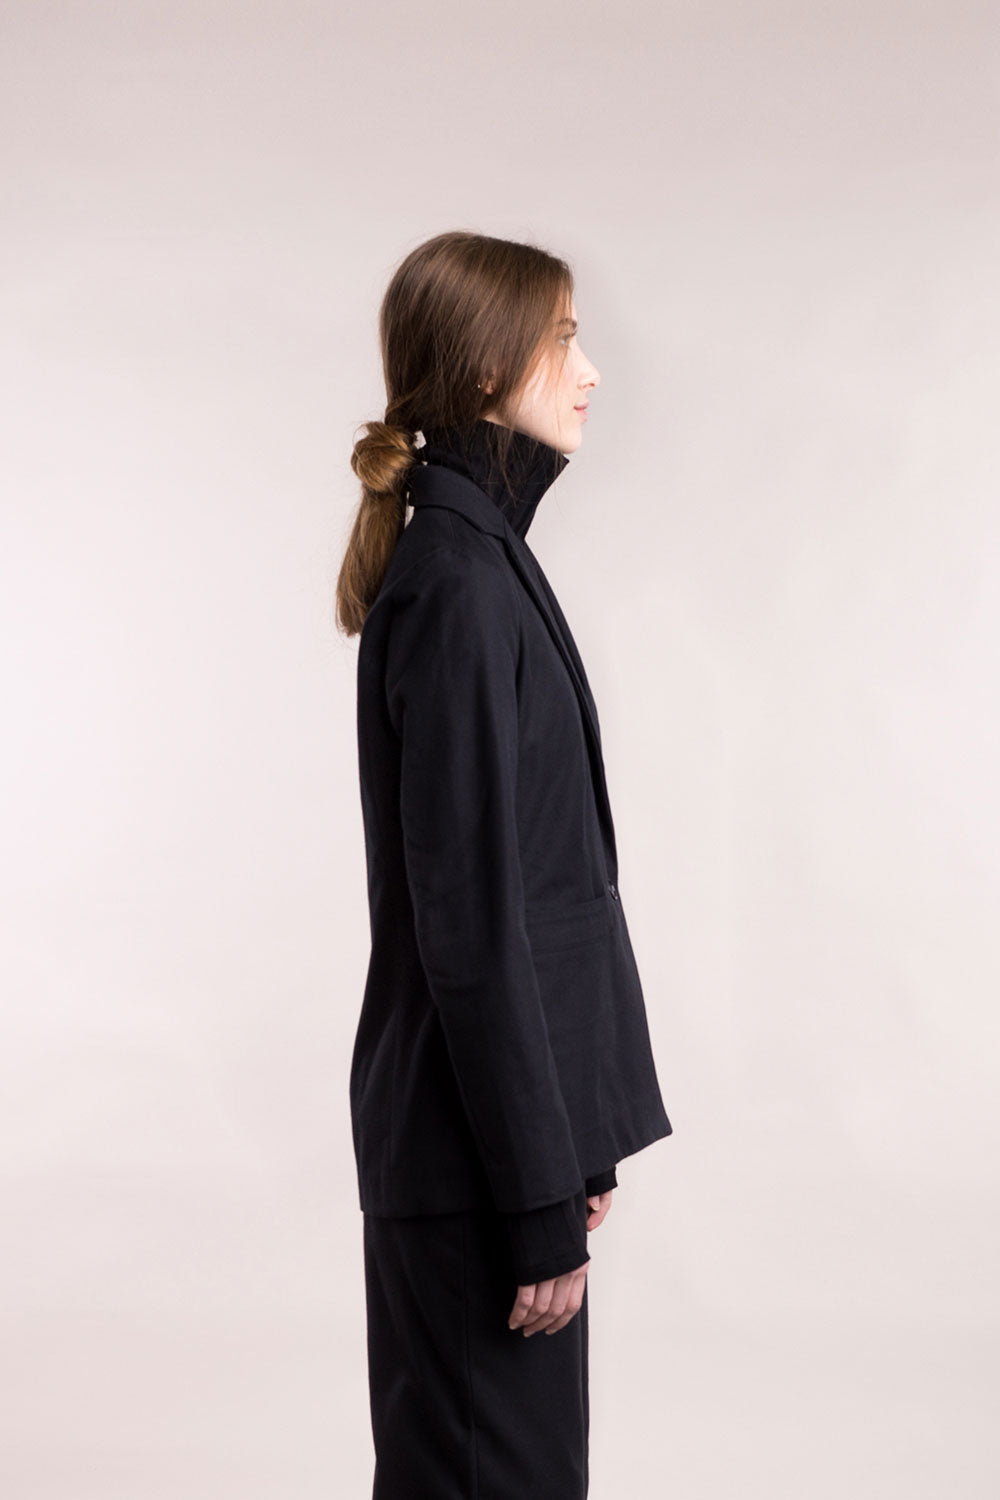 The model wears a black, sustainable, organic cotton, tailored jacket, side view.